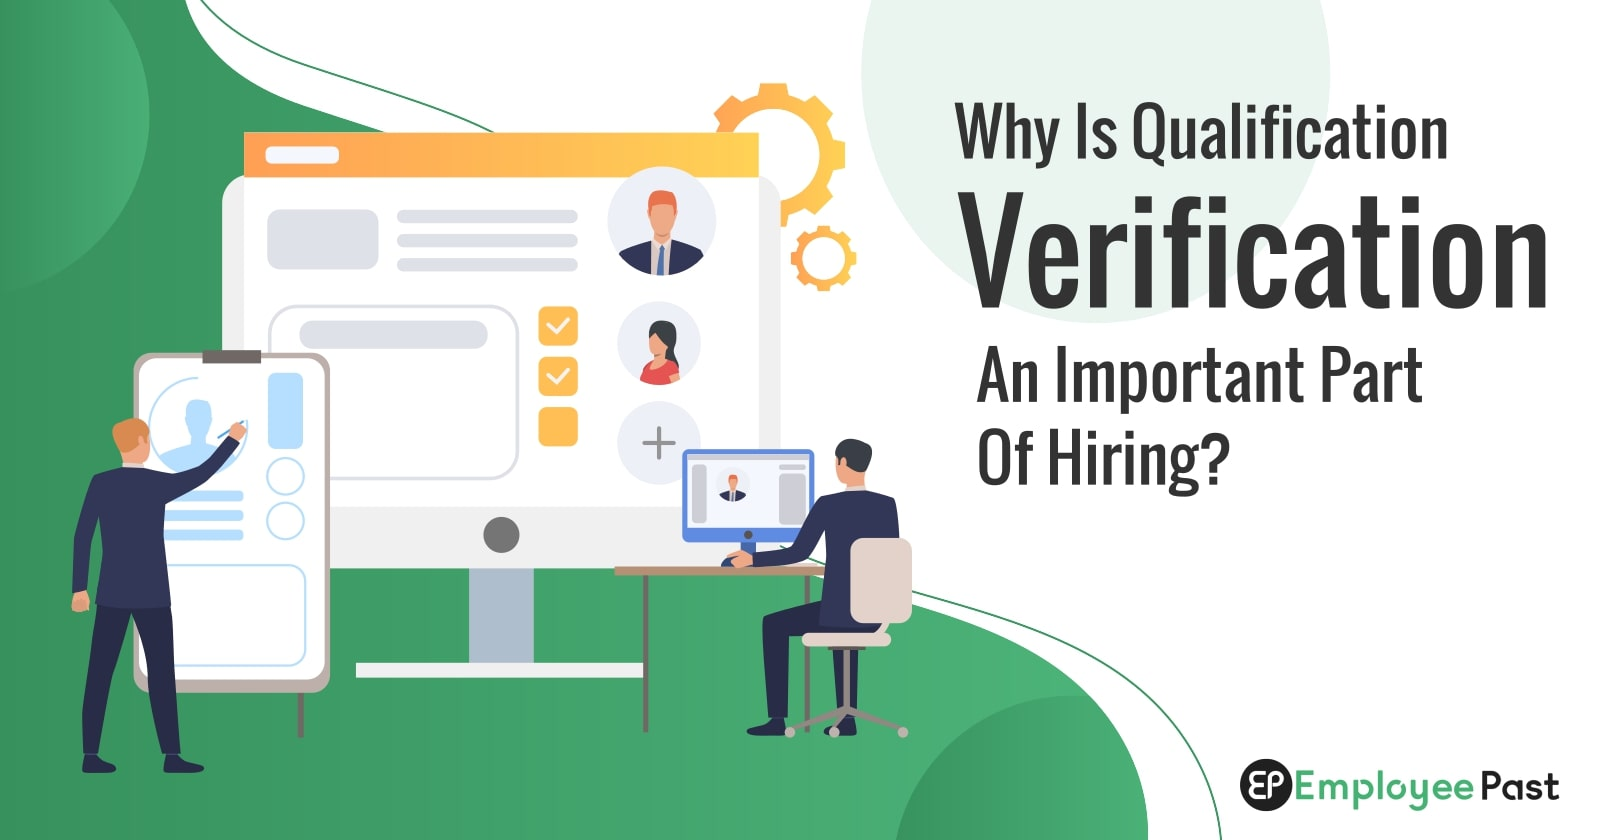 Why is Qualification Verification An Important part of Hiring?